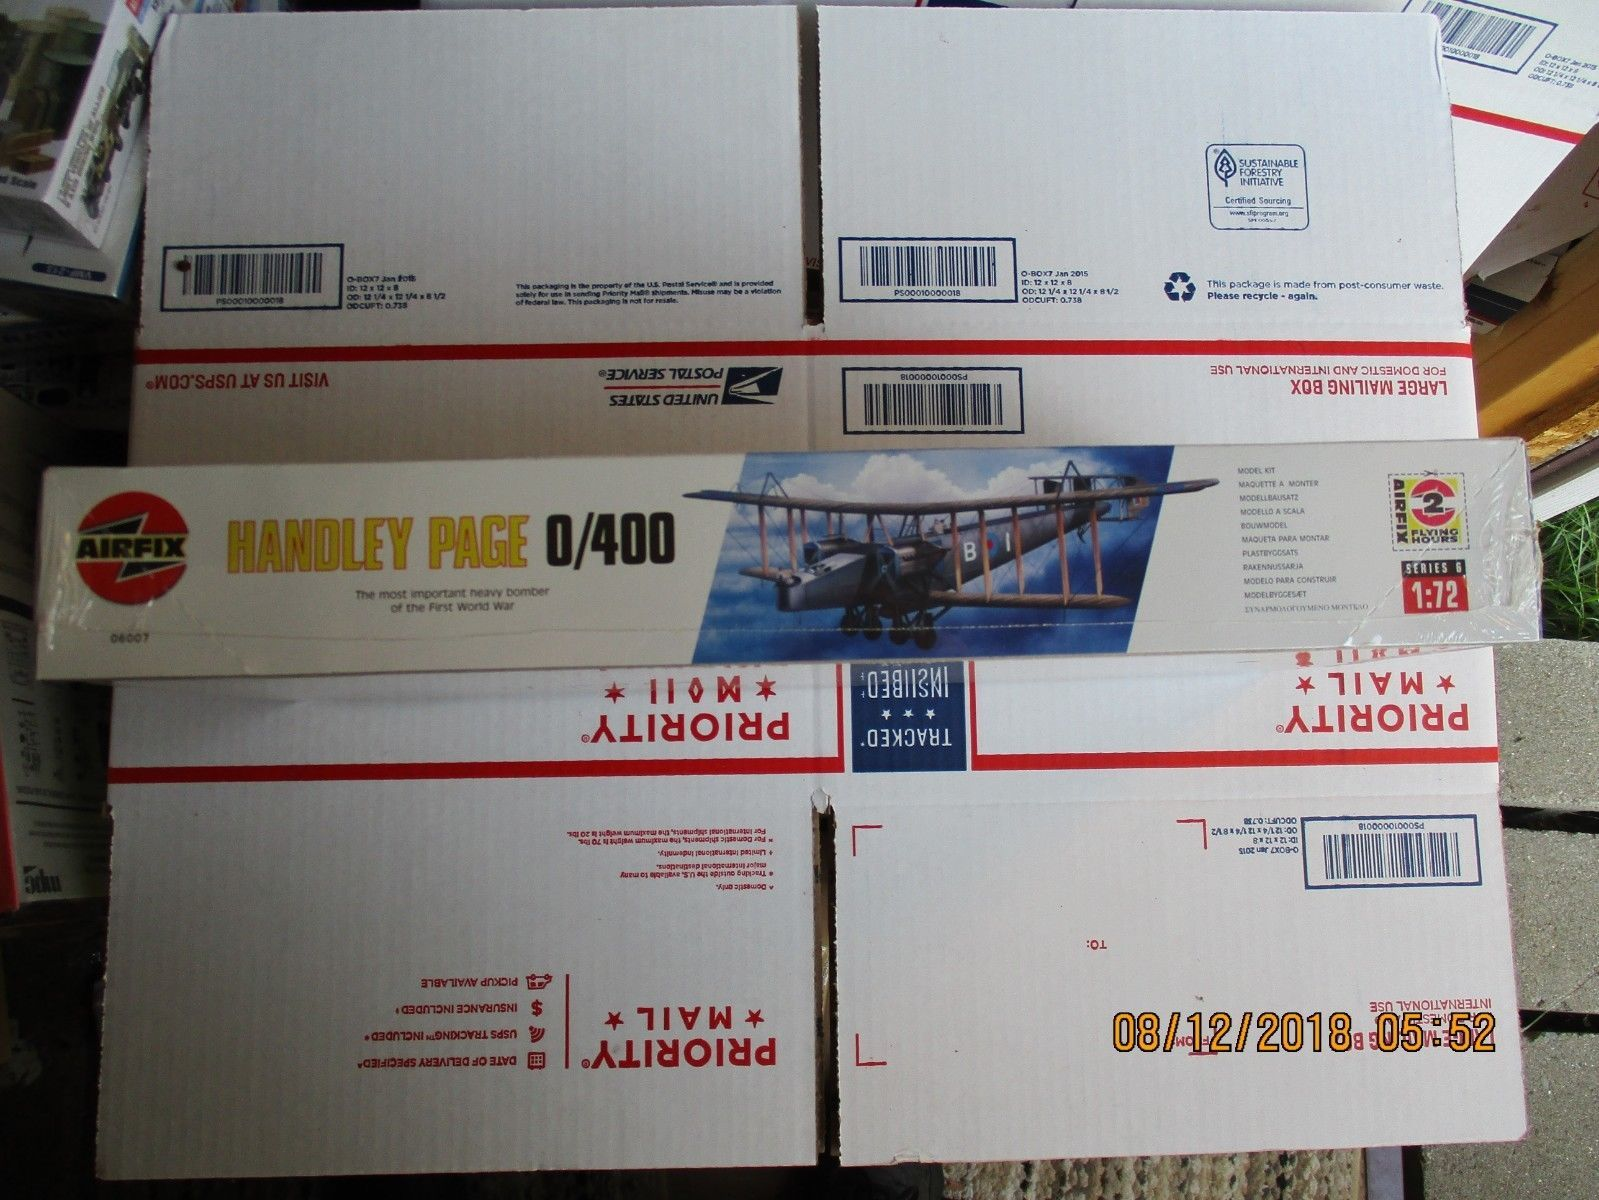 Airfix Handley Page 0/400 1/72 scale